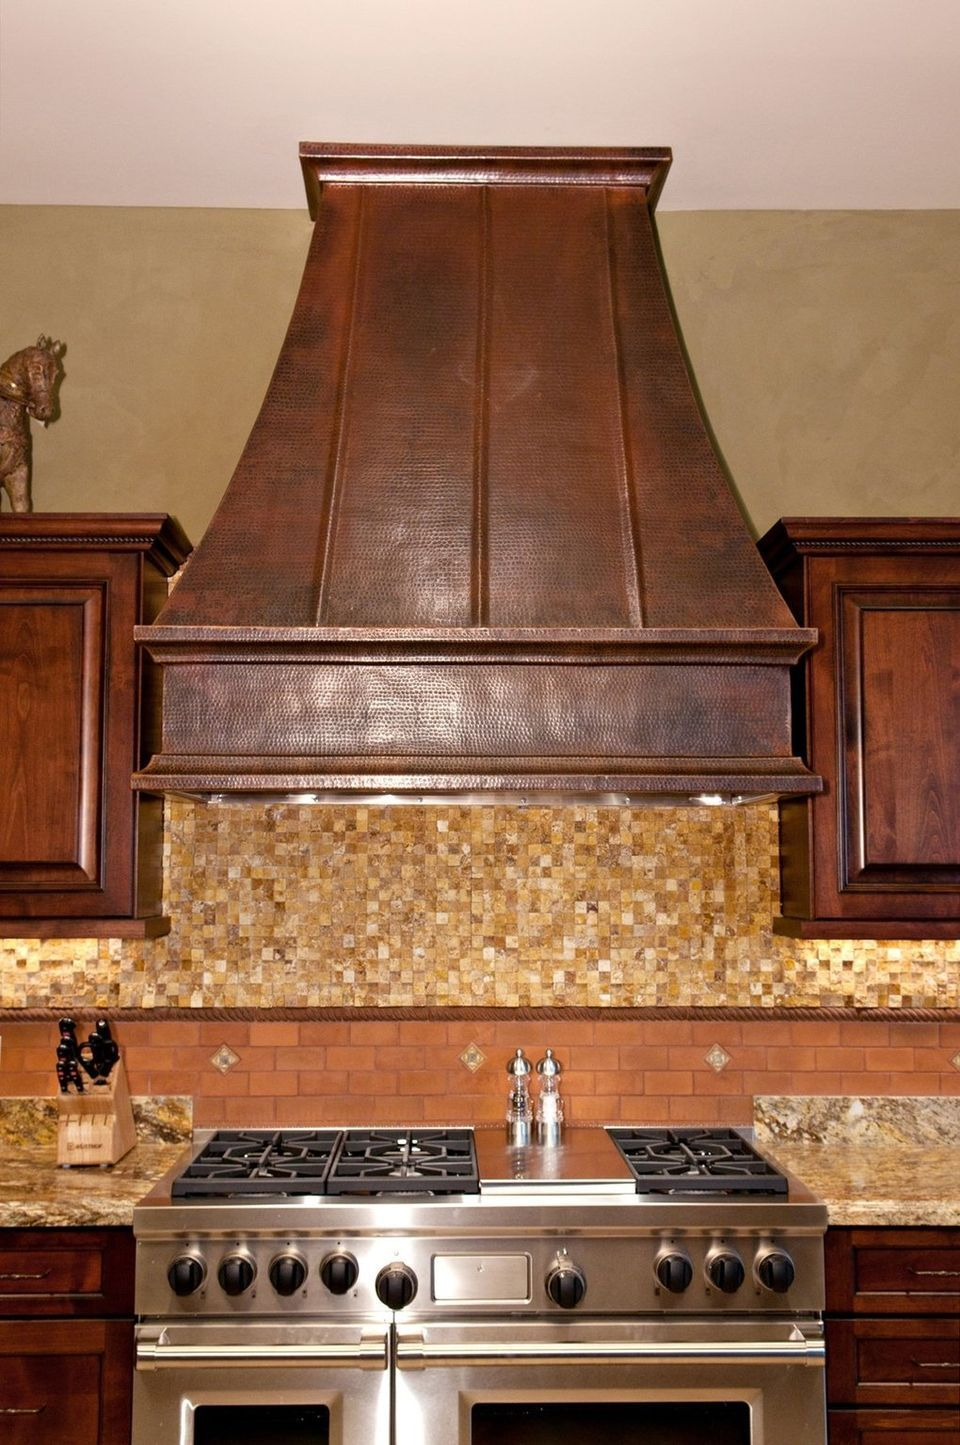 copper oven hood copper range vent hoodscopper stove hoodscopper exhaust hoodscopper kitchen pinterest range vent exhaust